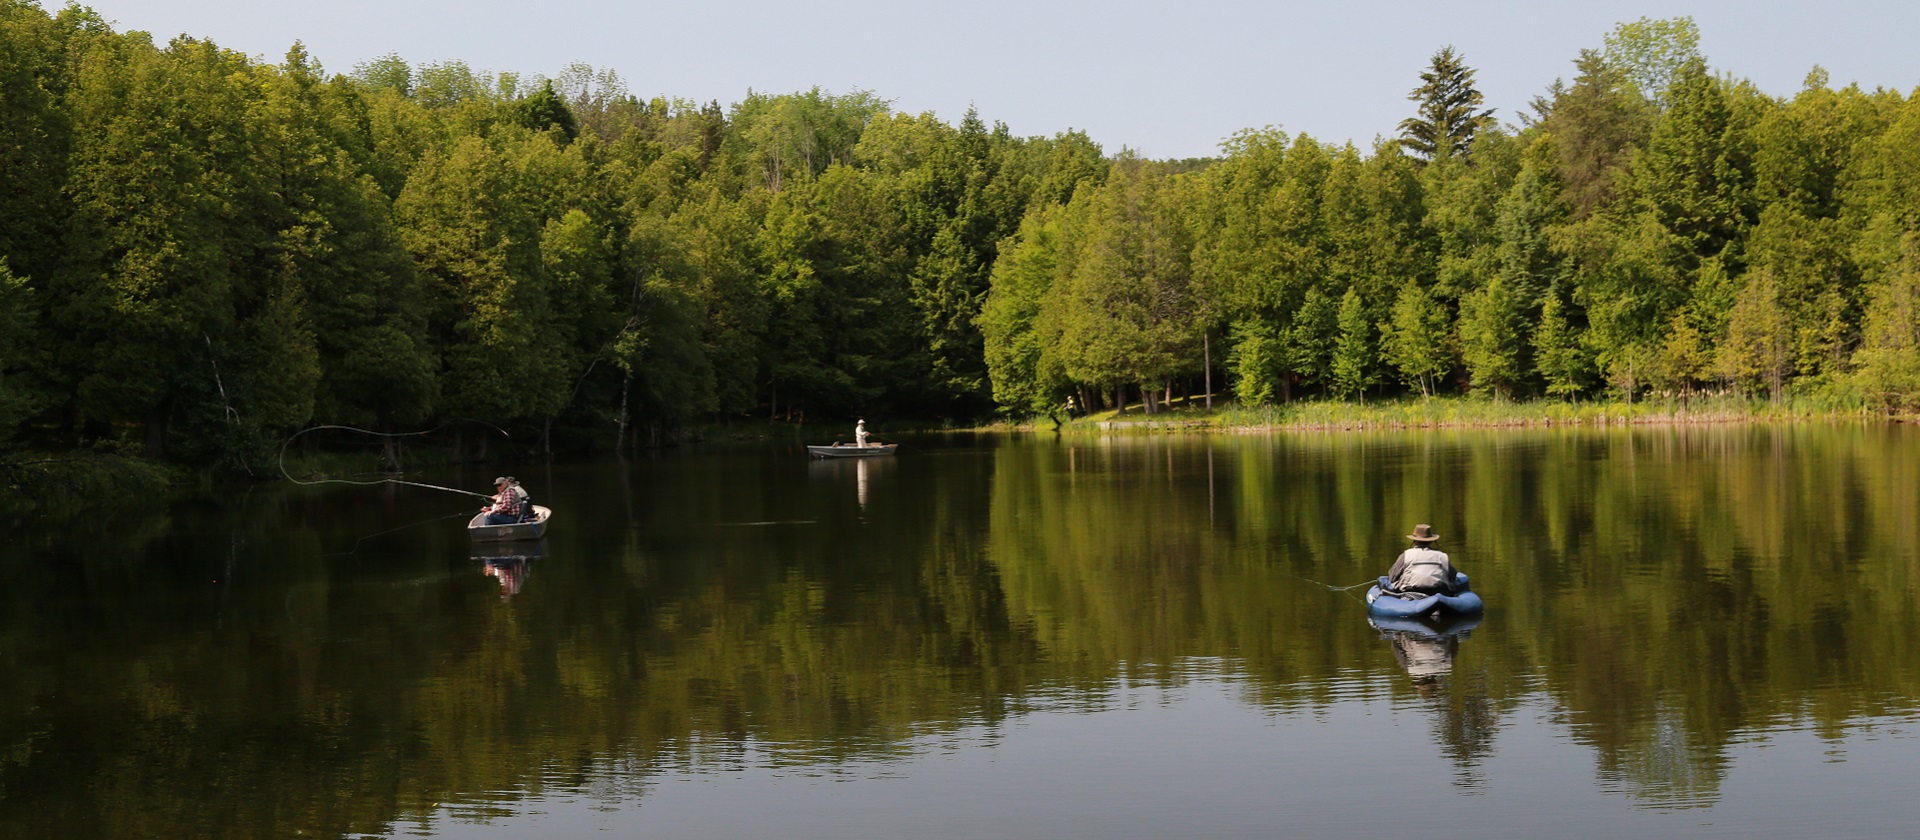 Fly fishing at Glen Haffy Conservation Area